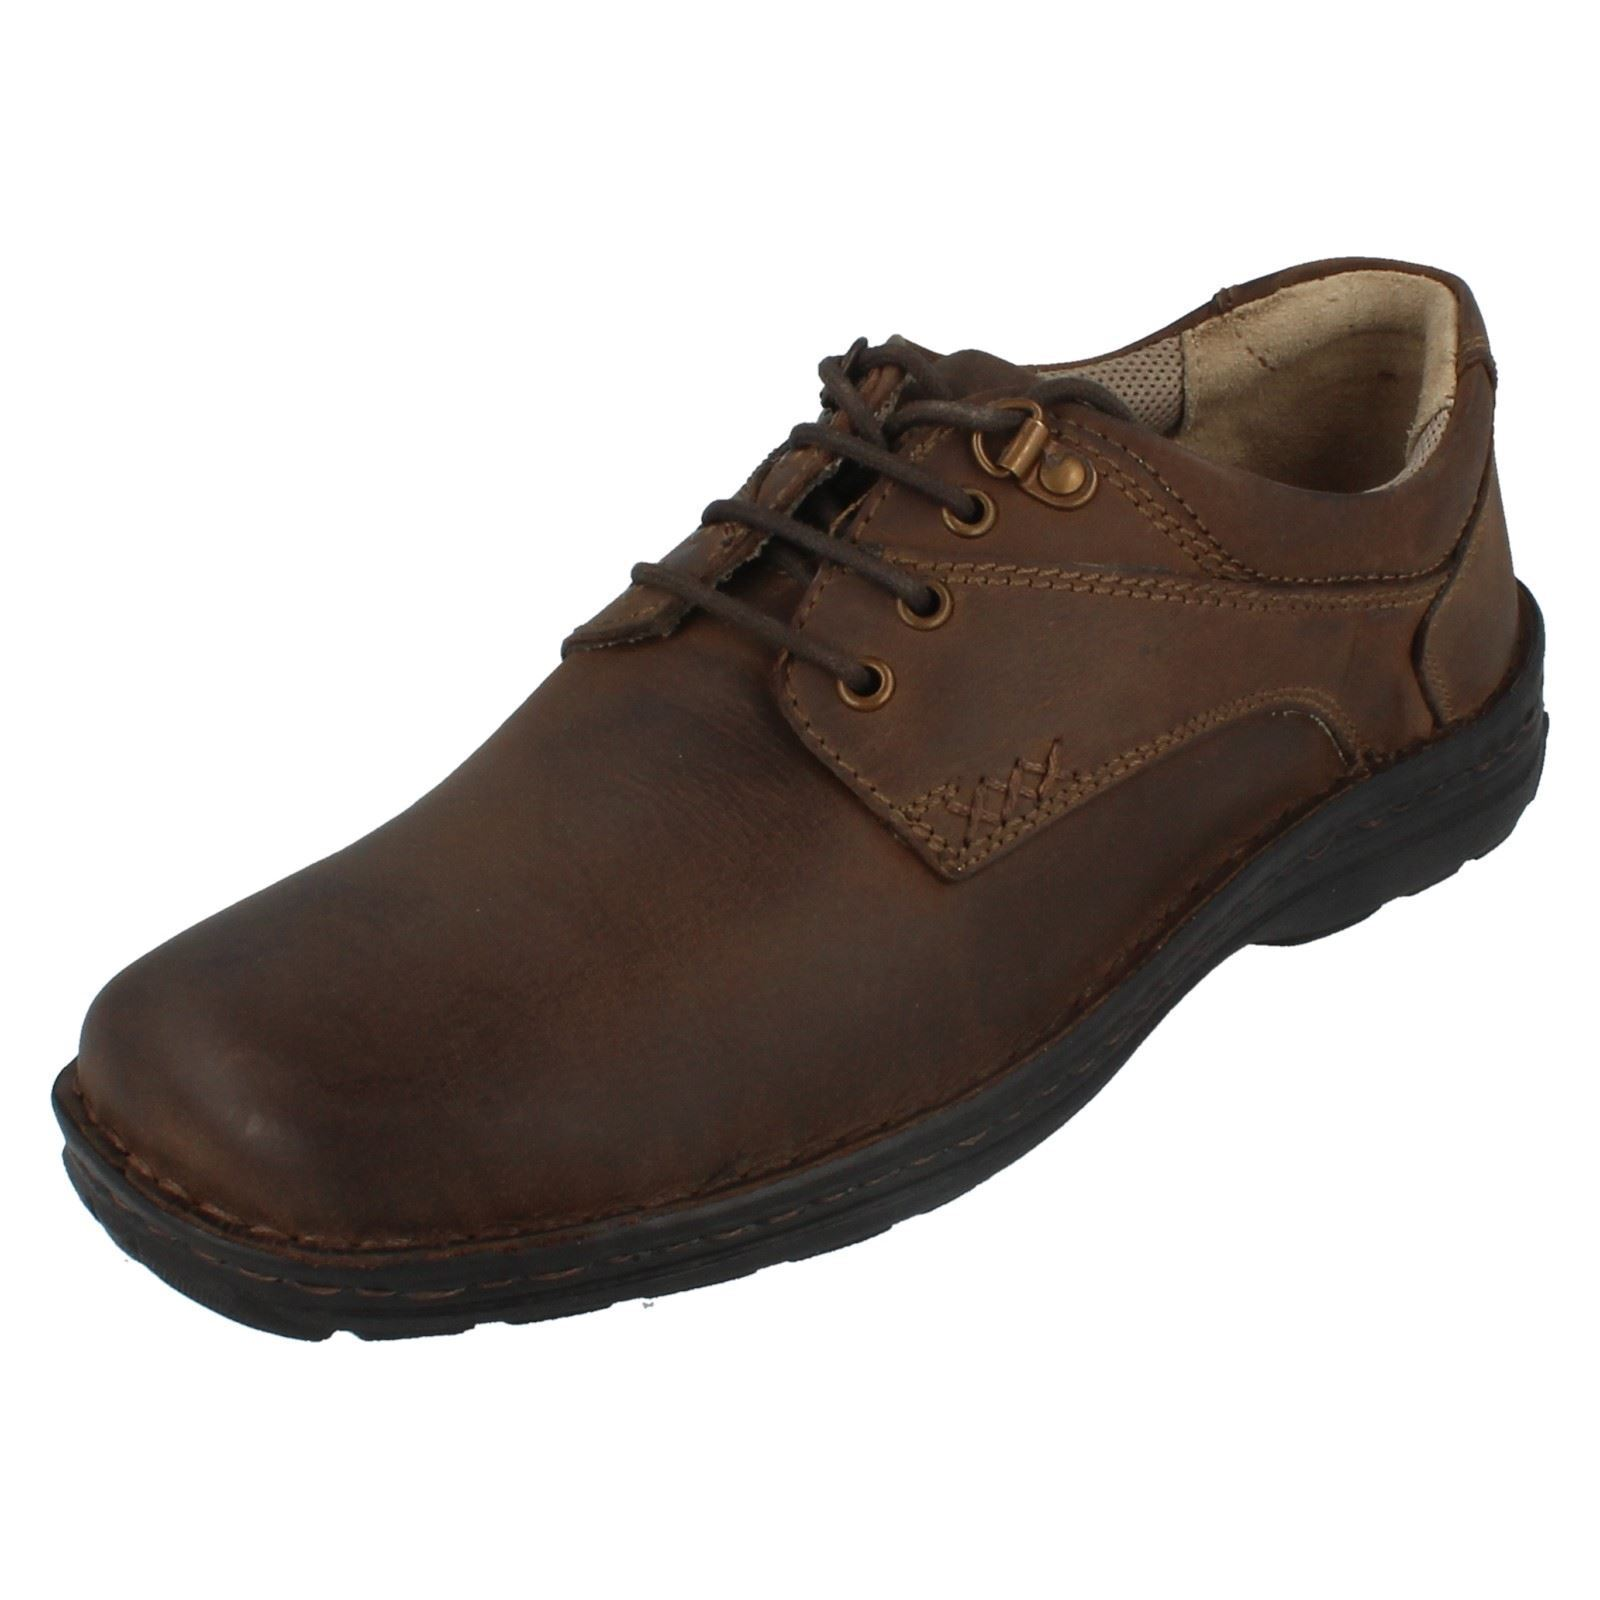 MENS HUSH PUPPIES GEOGRAPHY LACE UP BROWN LEATHER SMART FORMAL SHOES H104687